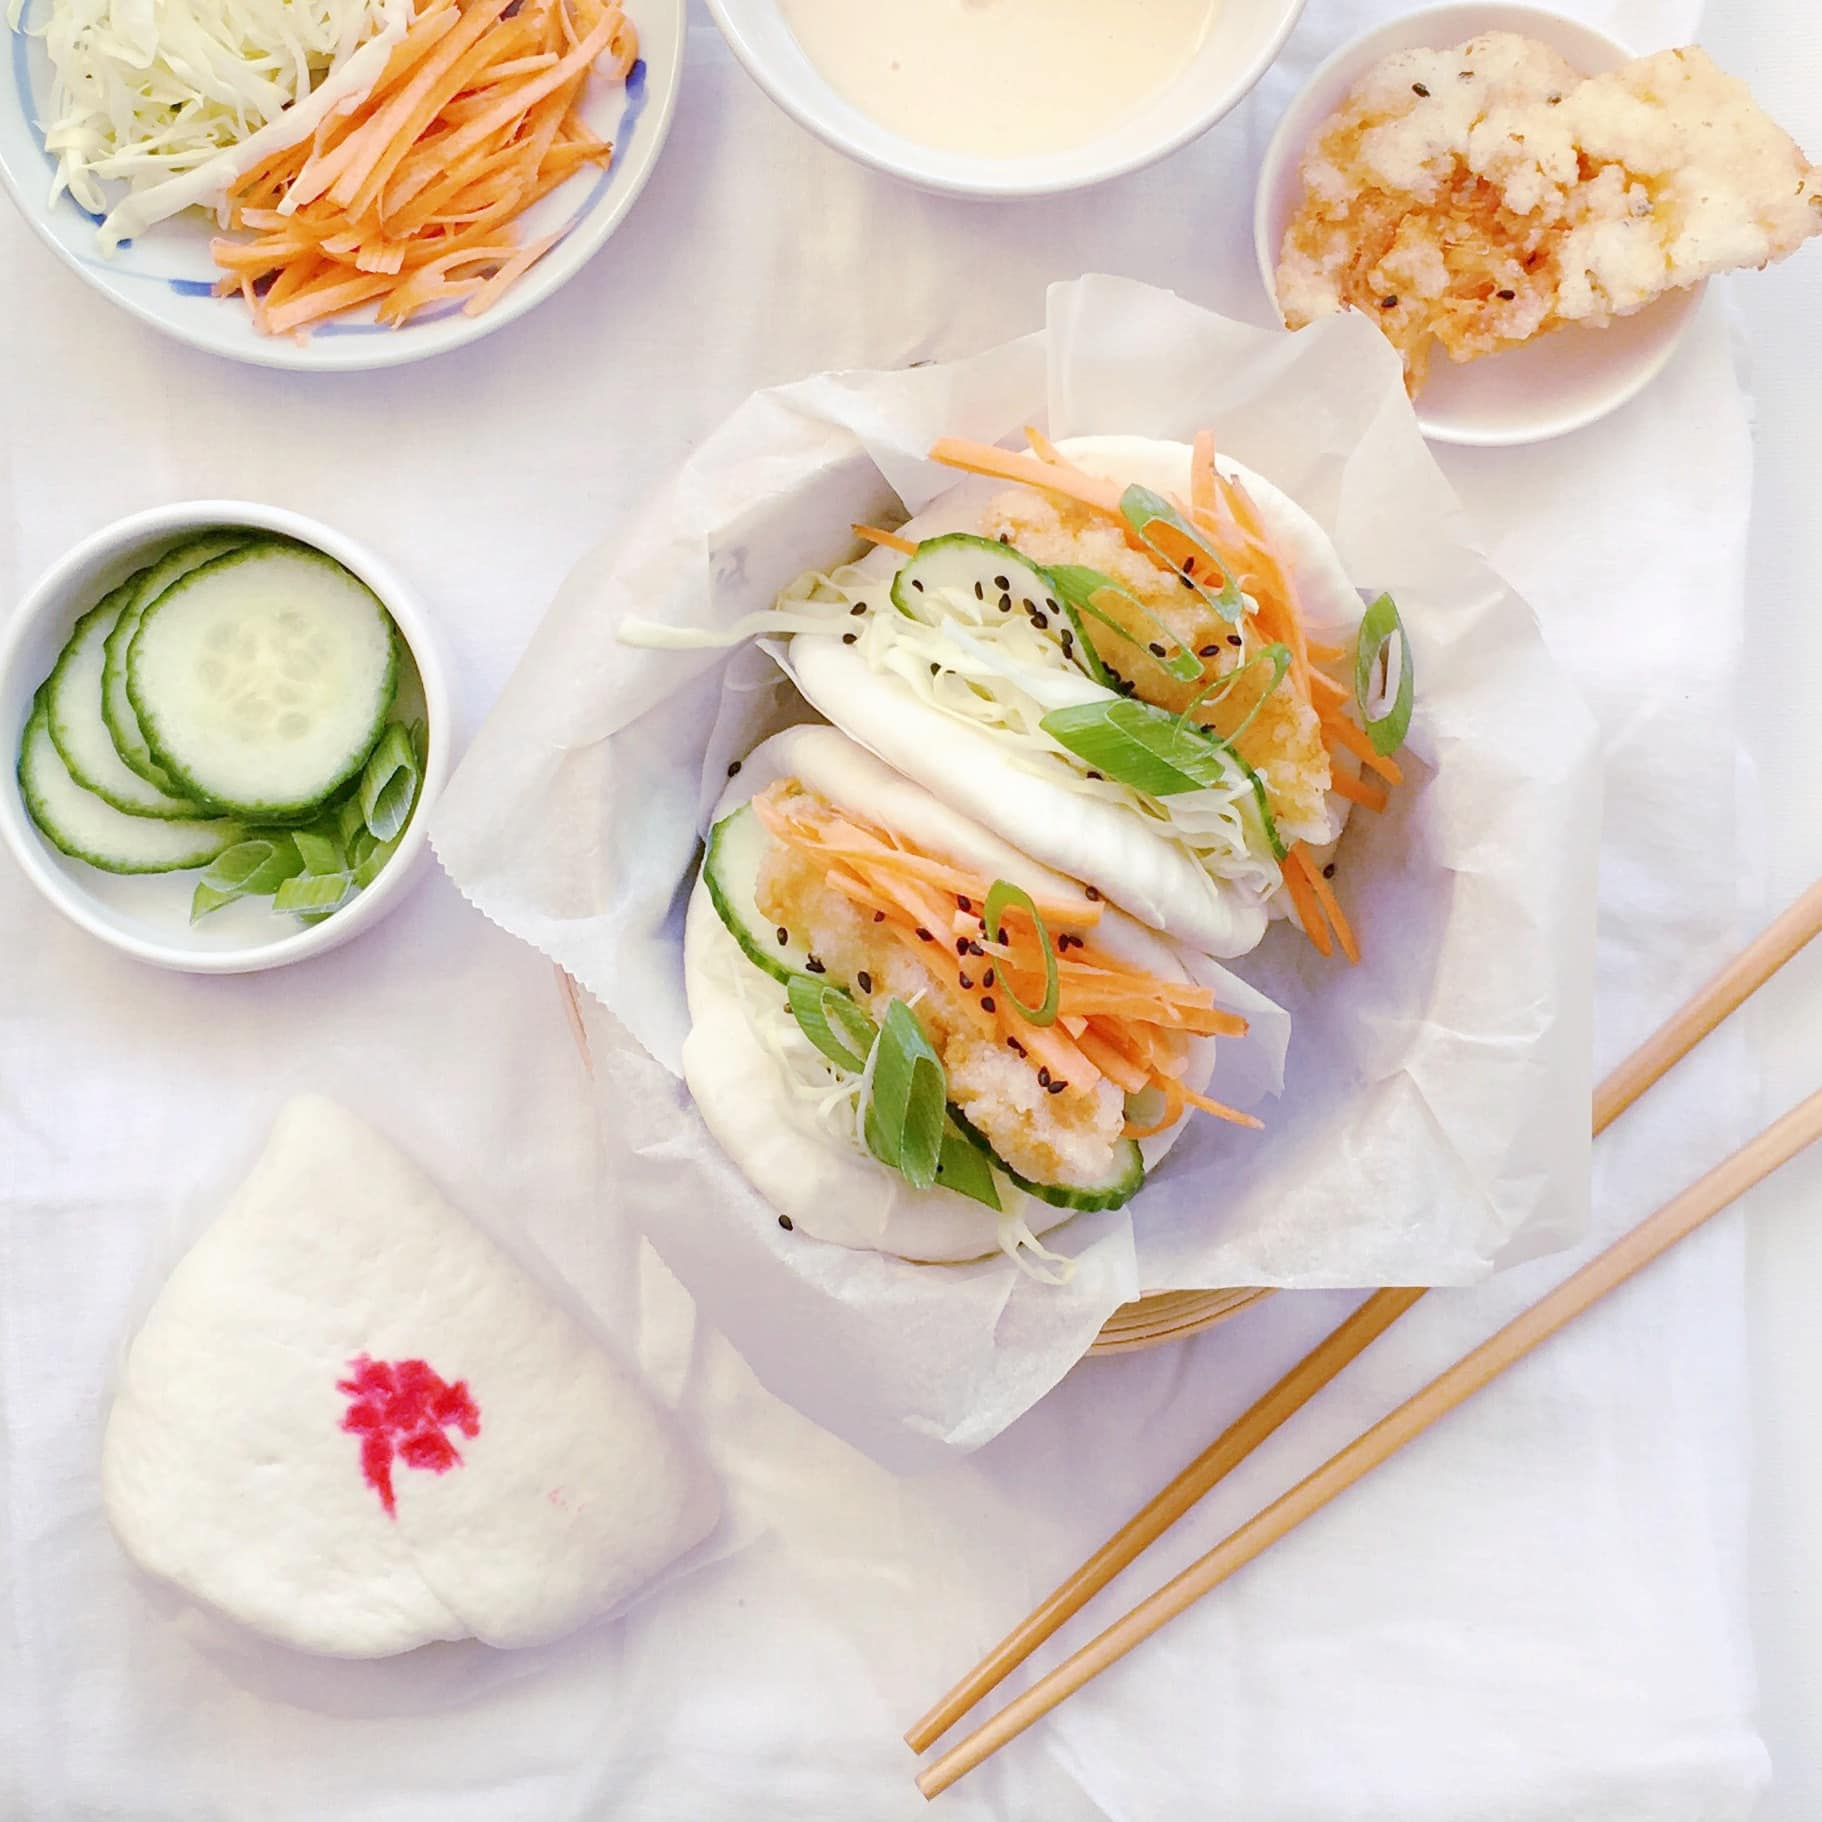 image 48 - Recept Gua Bao - Food blog Challenge #3